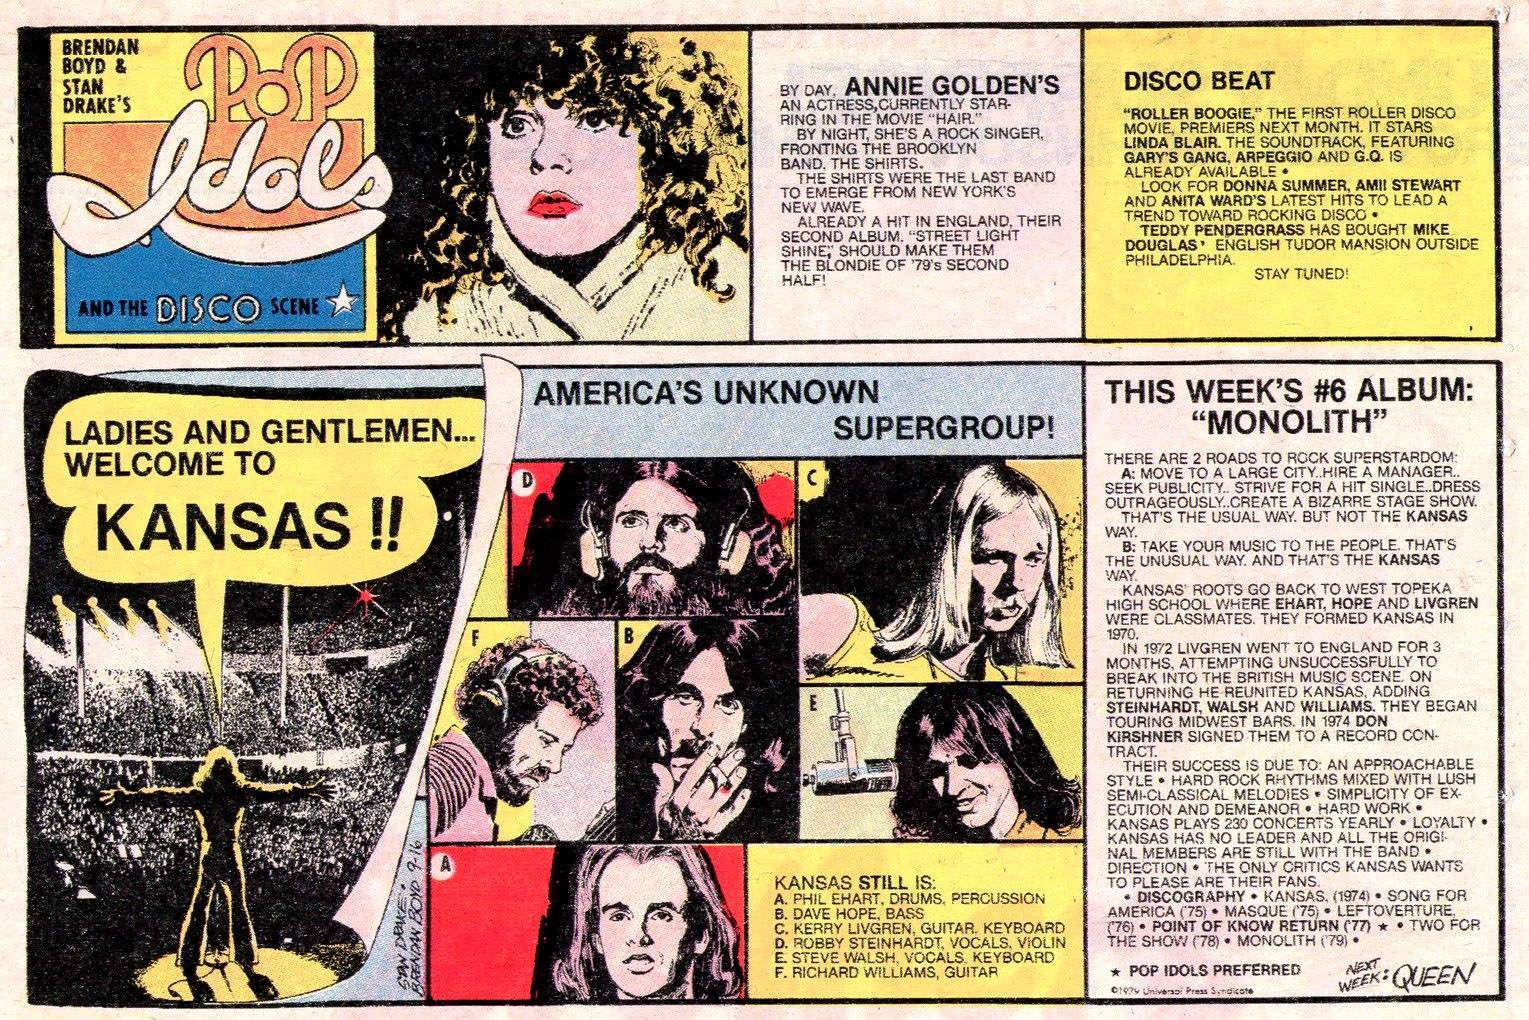 POP IDOLS AND THE DISCO SCENE Newspaper Strip Sunday  September 16 1979